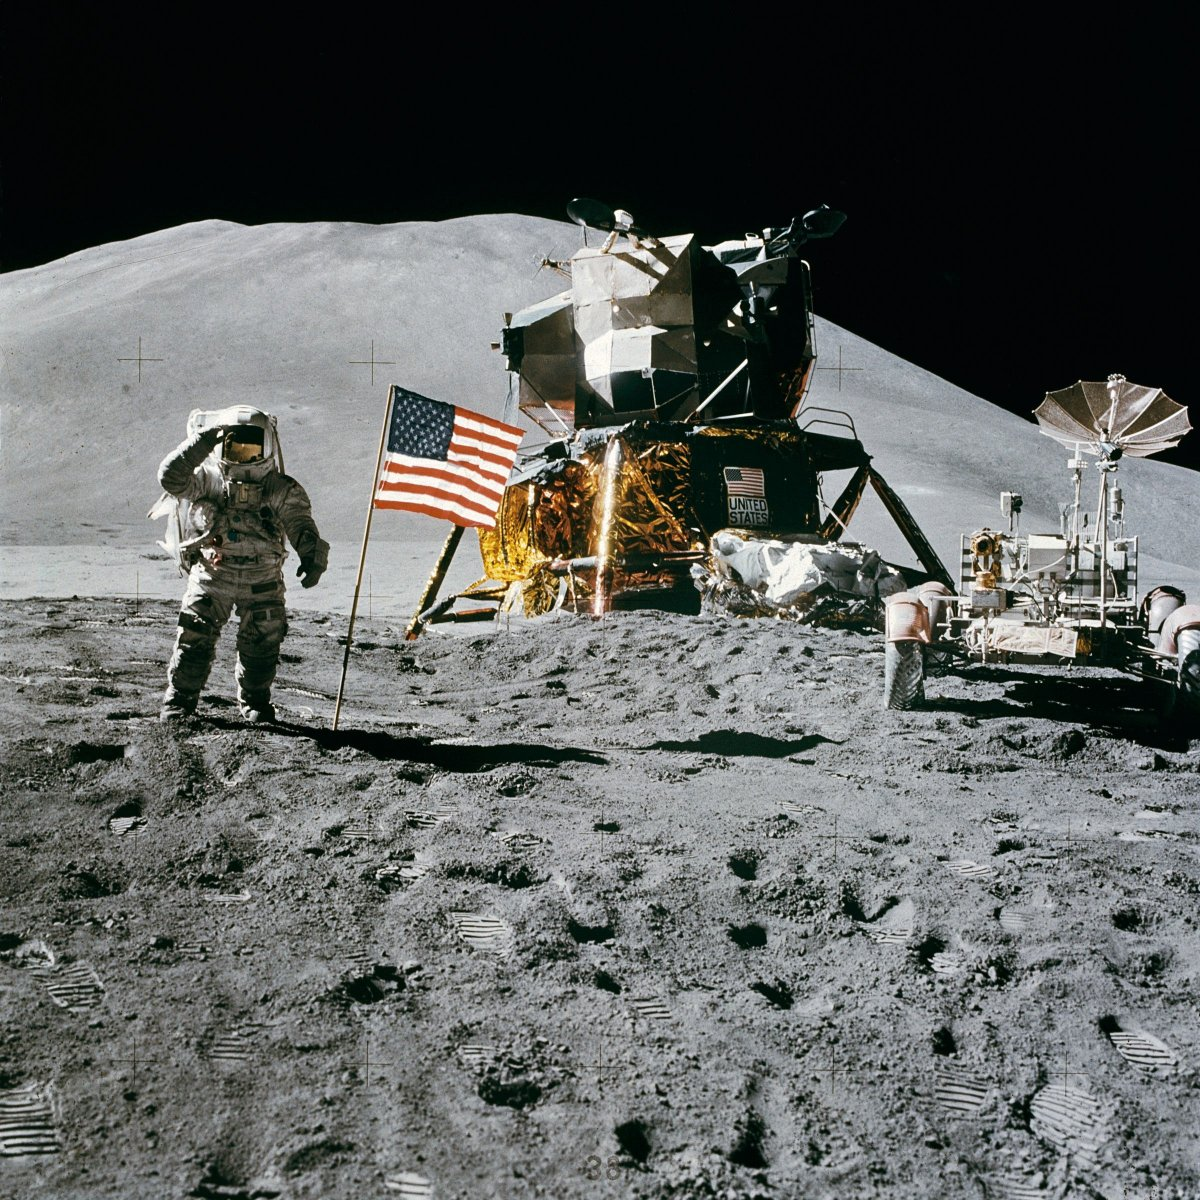 In celebration of the 50th Anniversary of the Apollo 11 Moon Landing, UW-Superior will hold a FREE educational event for children Pre-K - 5th grade on Saturday, July 20 from 1-3 pm in the Yellowjacket Union Great Room! https://t.co/pshmUpNus3 https://t.co/miw3t7QuJq